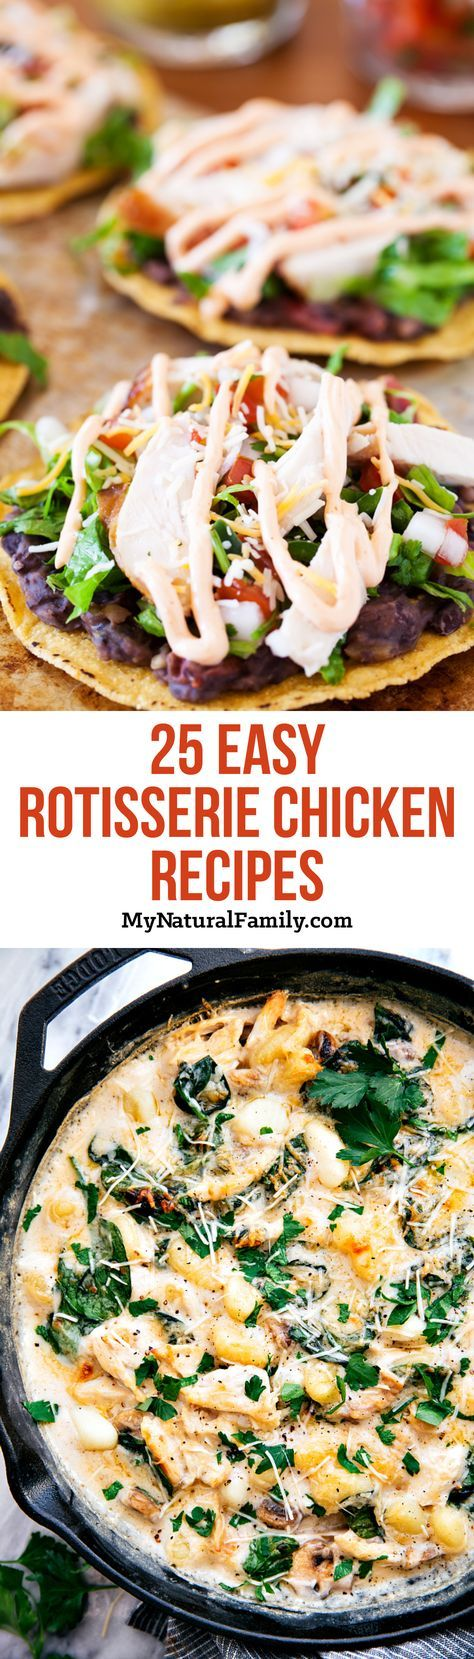 9 Of The Best Ever Easy Rotisserie Chicken Recipes Cooked Chicken Recipes Easy Chicken